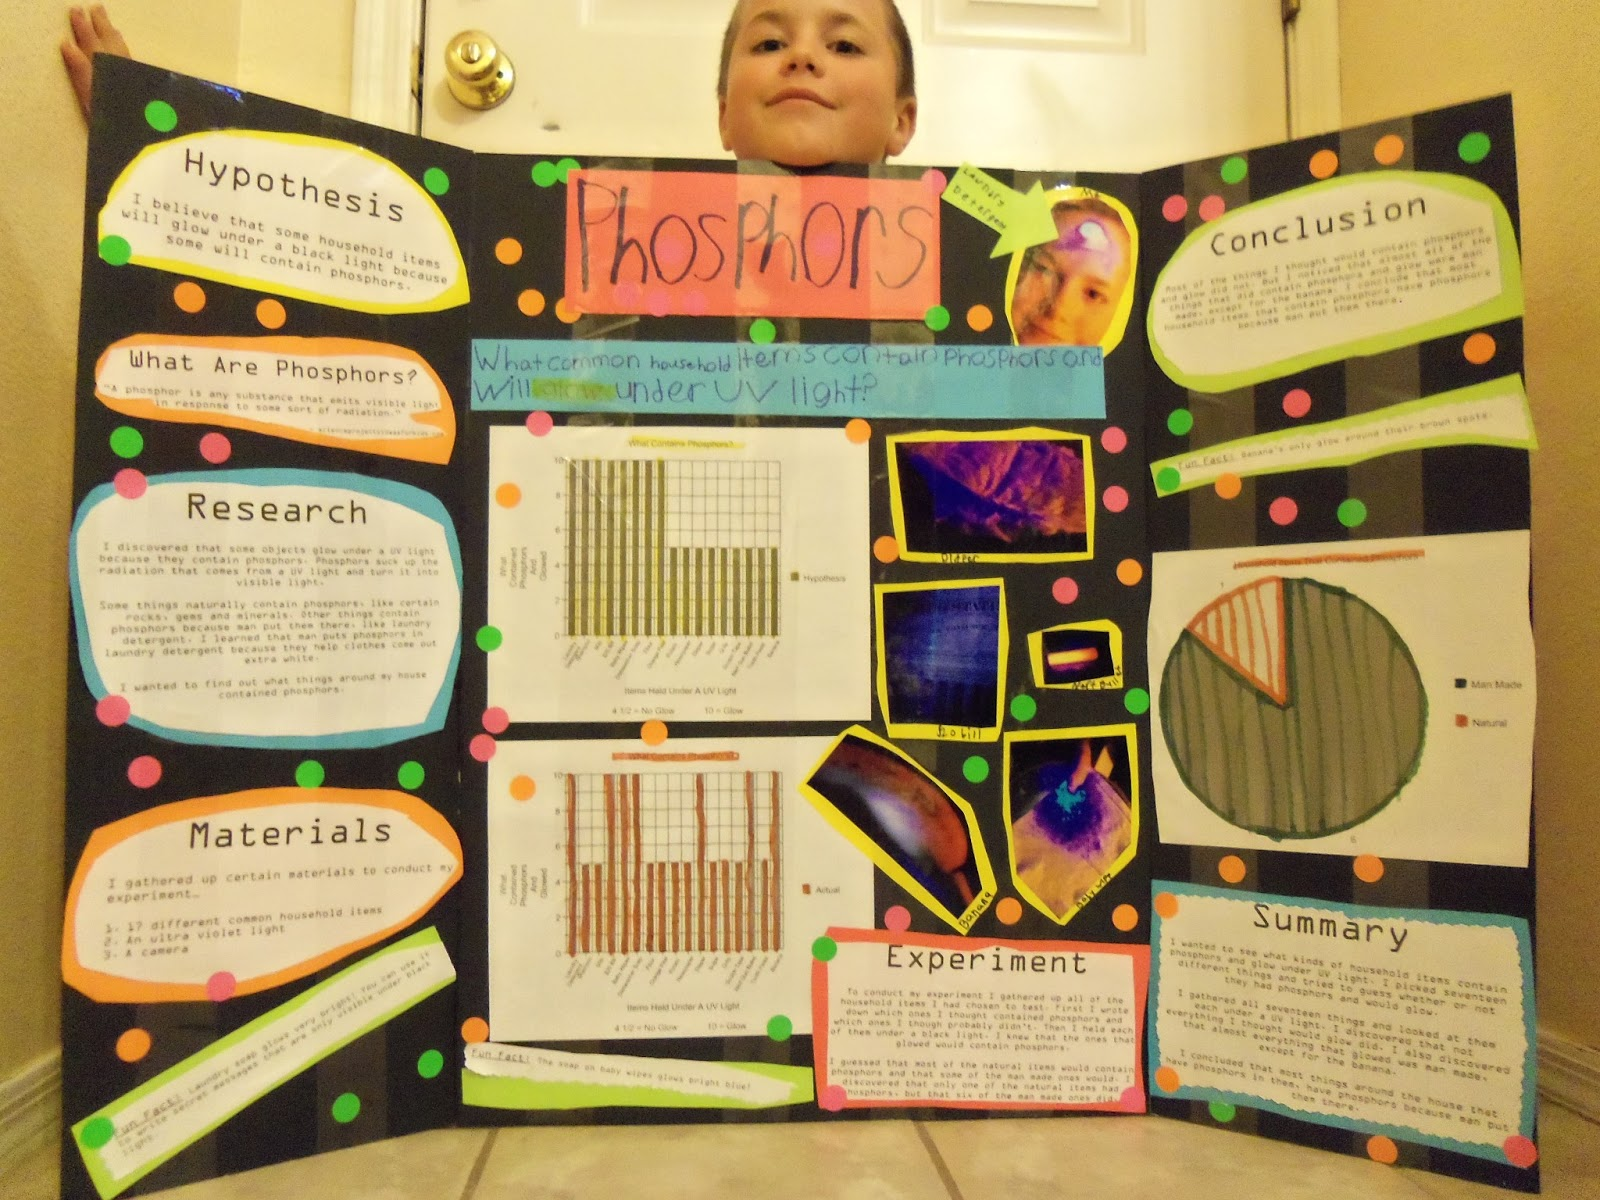 4th grade science fair project Find and save ideas about 4th grade science projects on pinterest | see more ideas about 4th grade science experiments, kid science and science club activities.